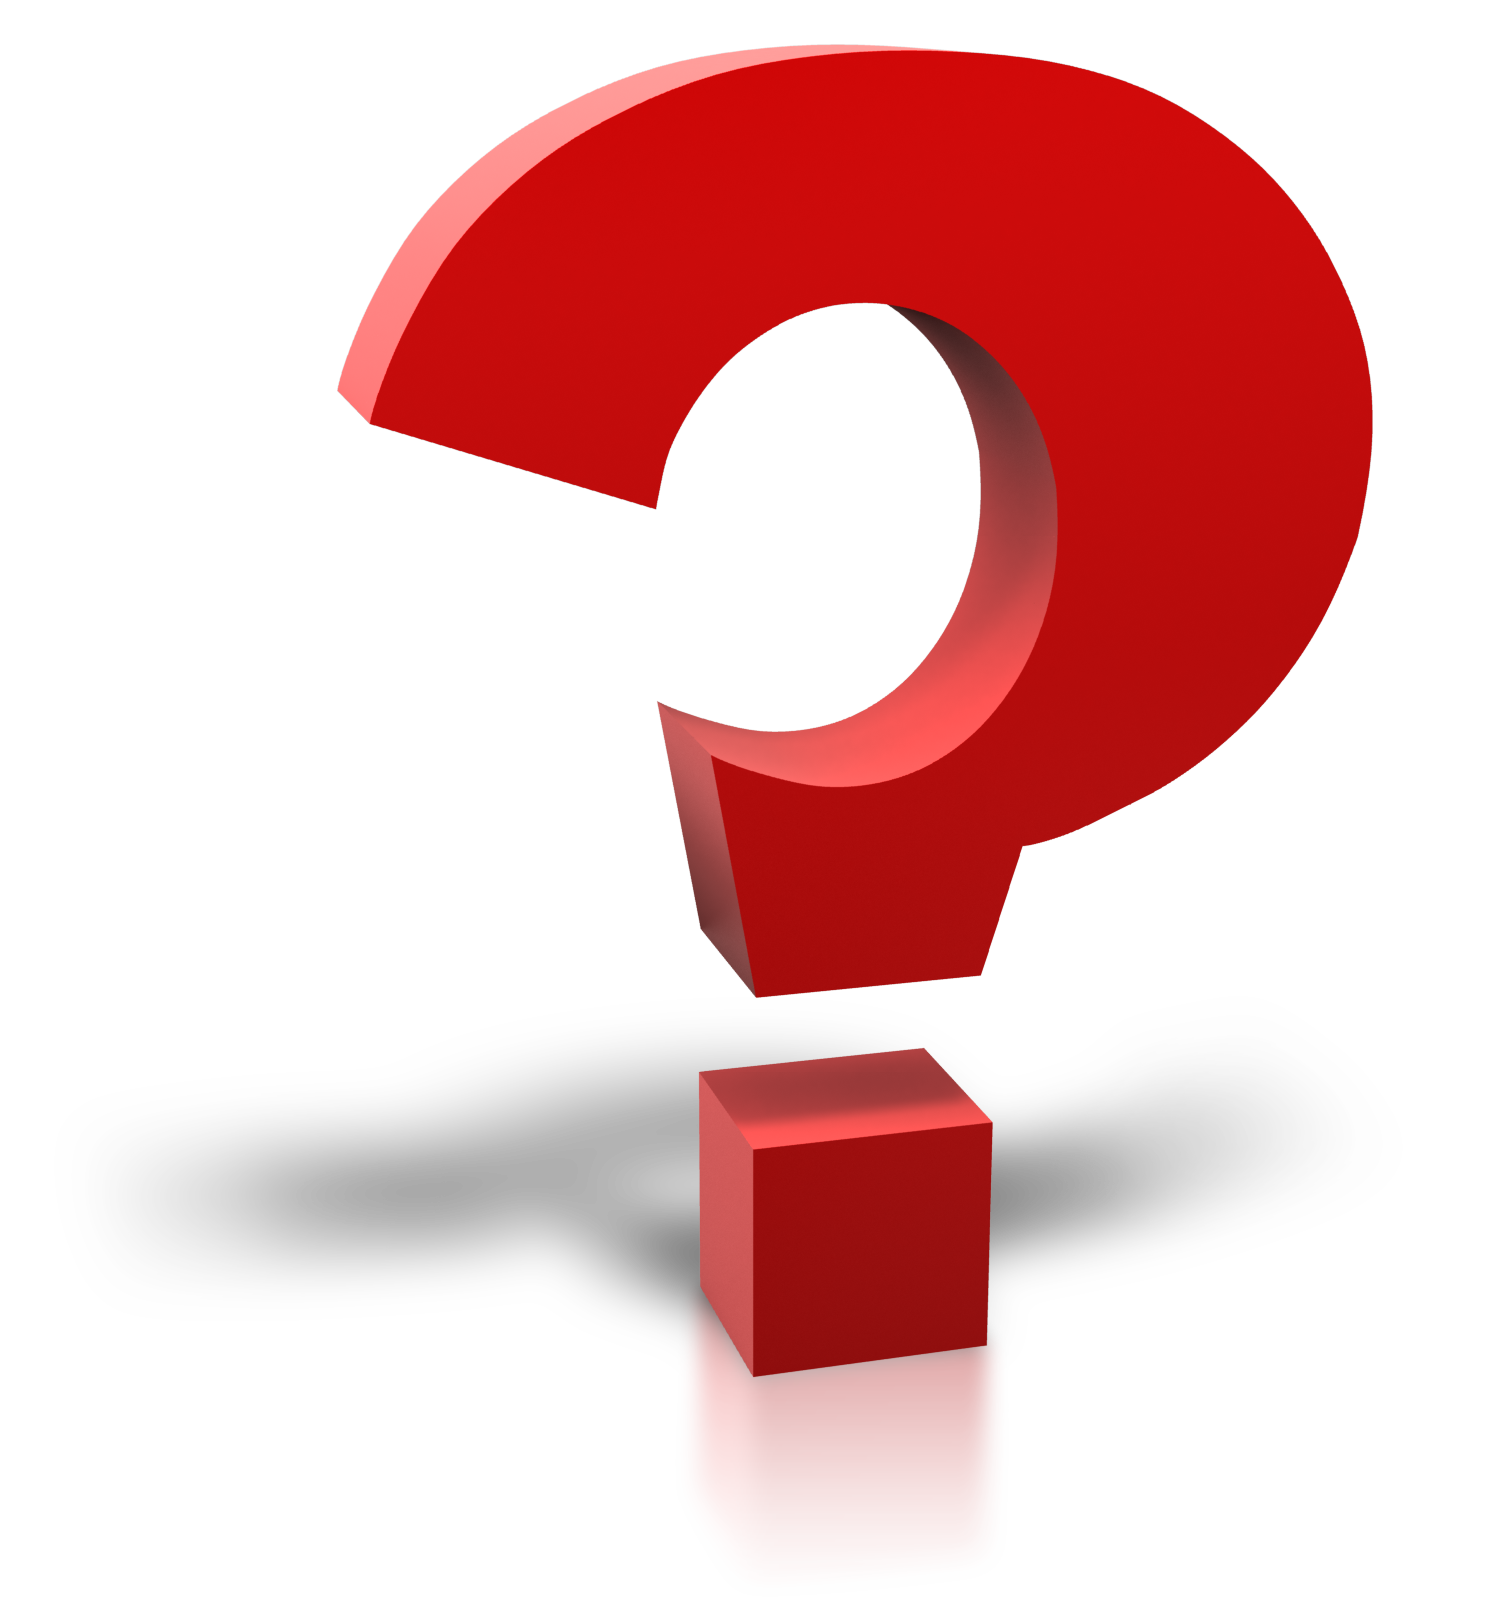 3d question mark png. D icon image